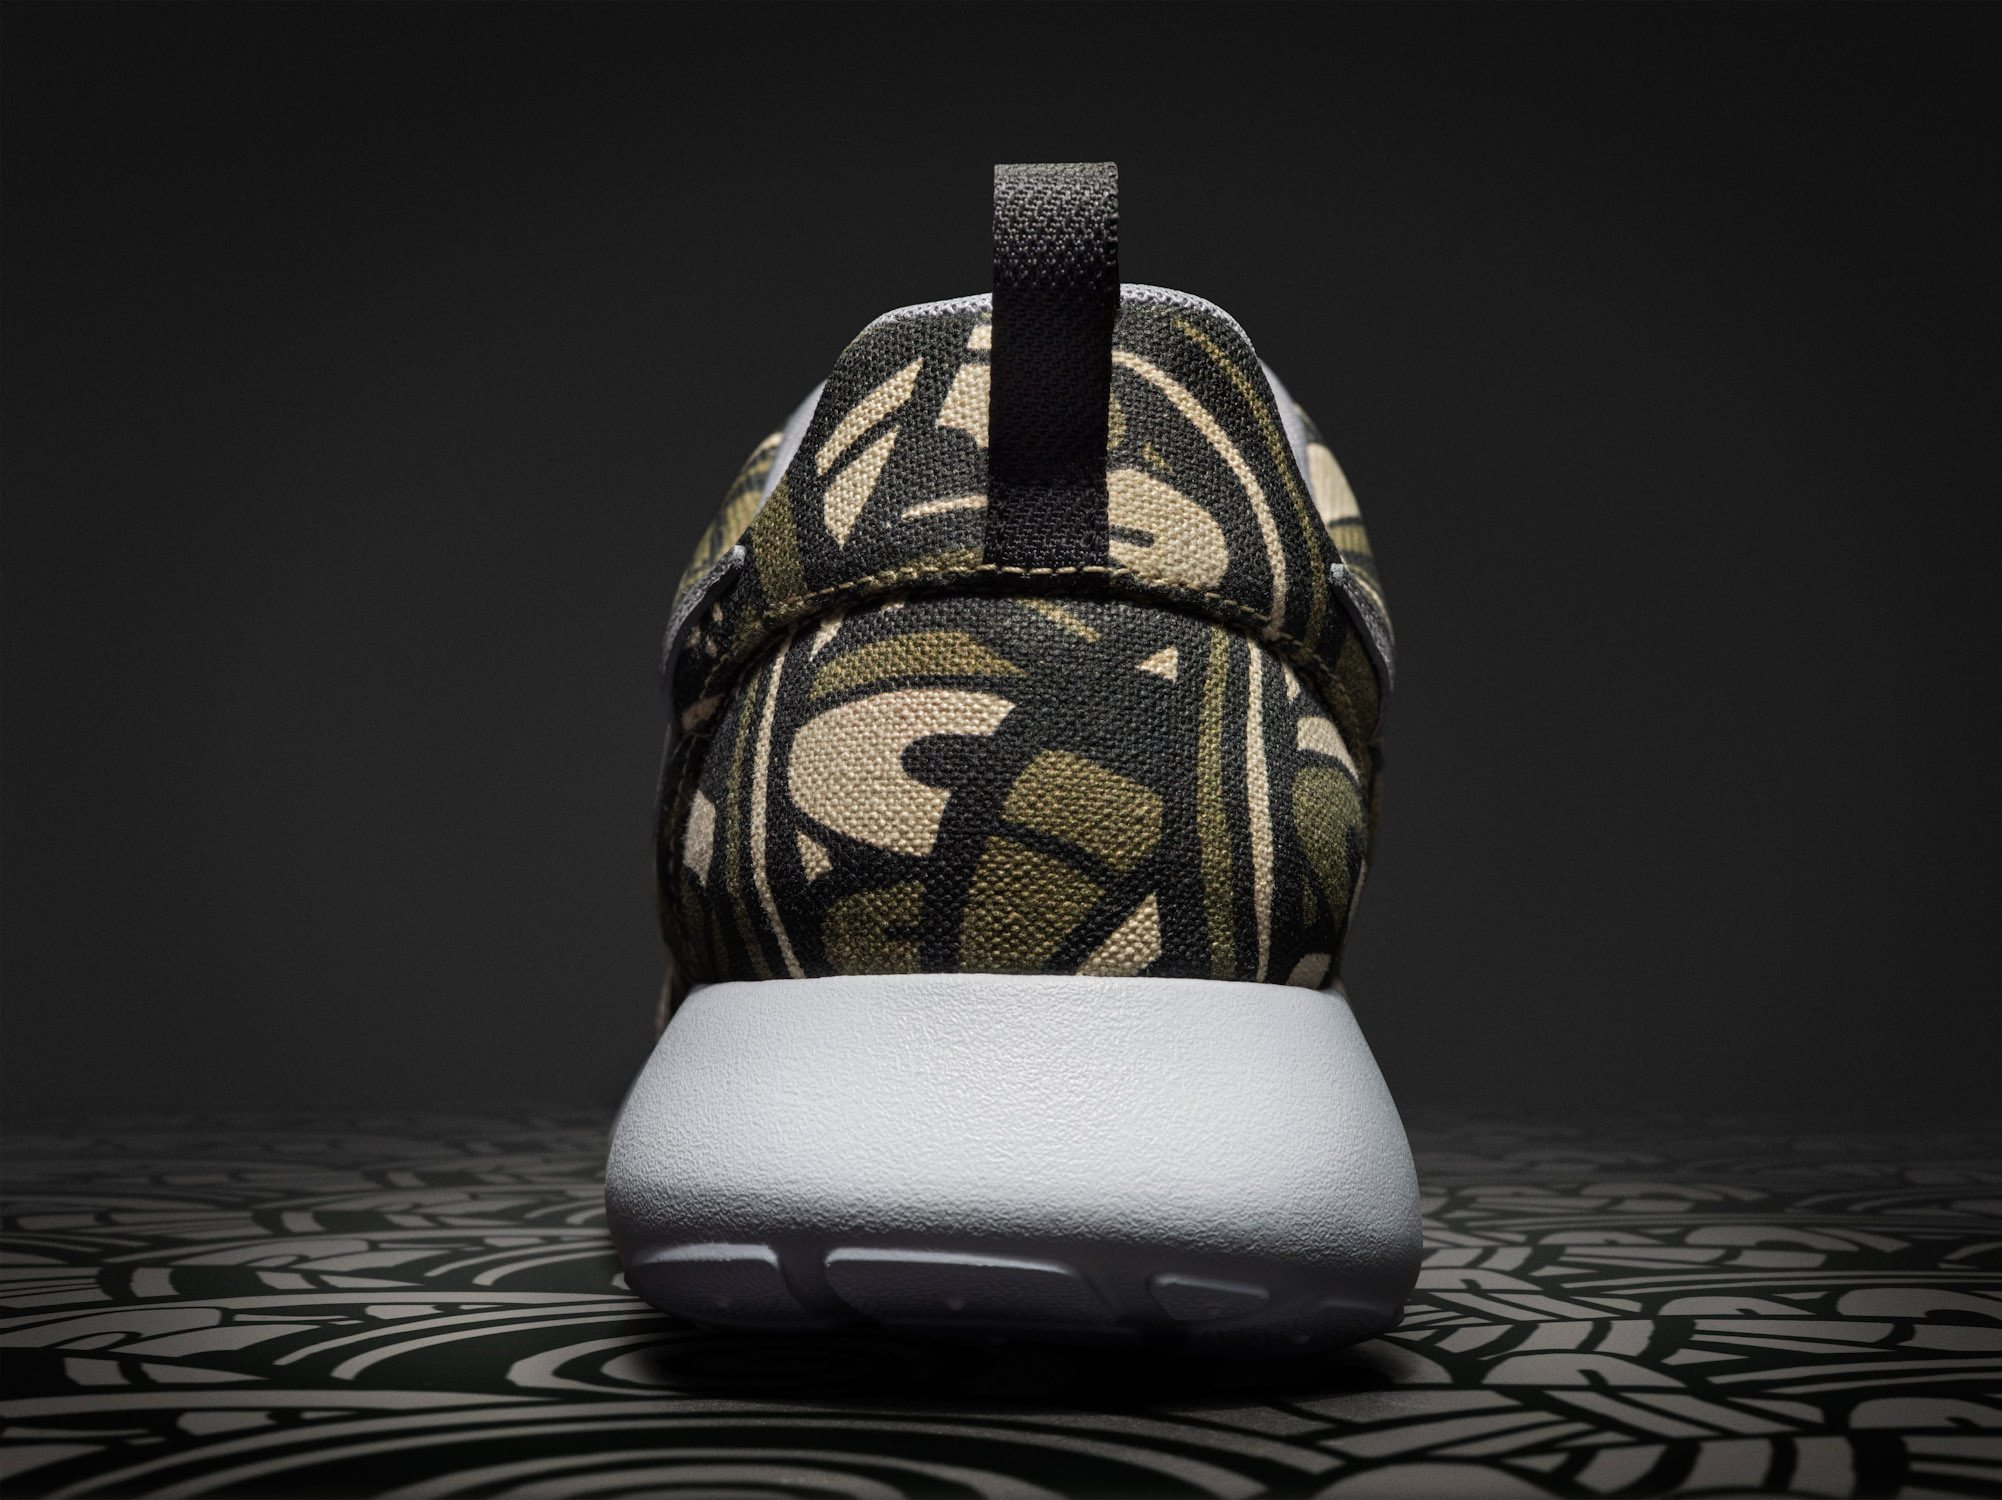 Nike Black History Month 2016 17